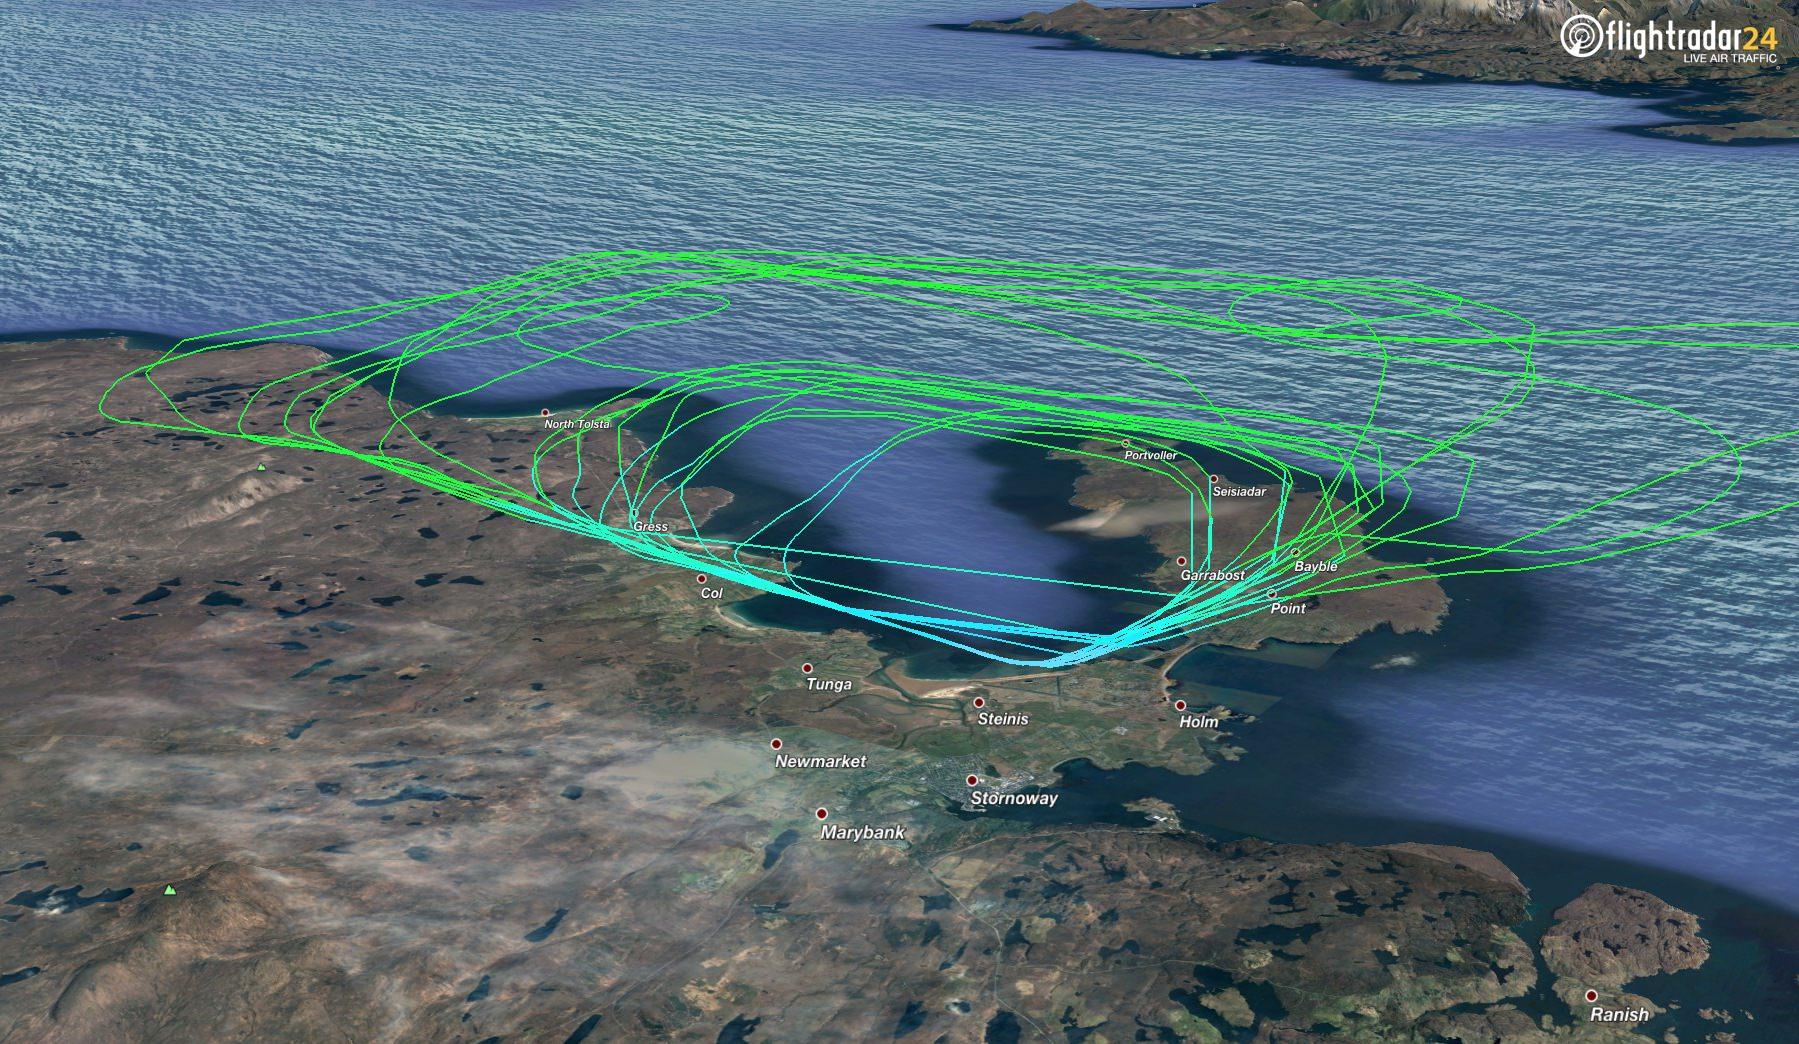 The track of the A350's crosswind landing practice at Stornoway